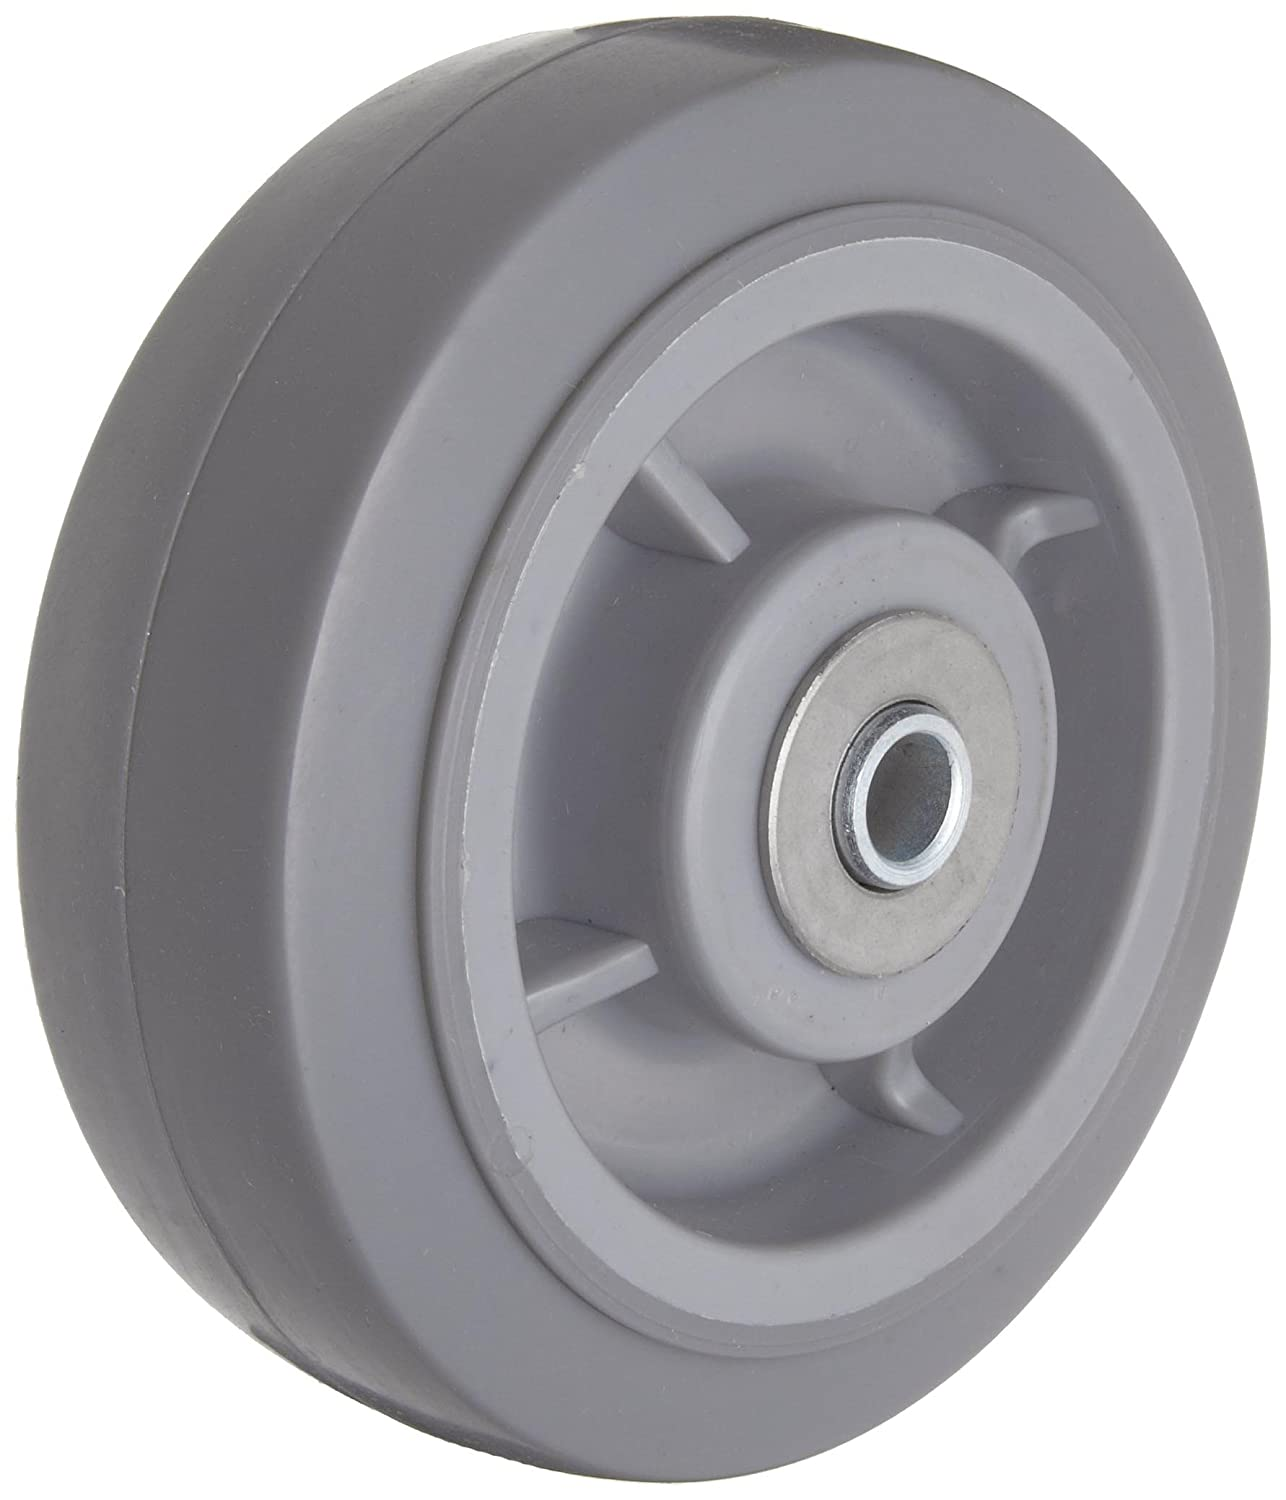 RWM Casters Performance TPR Rubber Wheel Roller Bearing 350 lbs